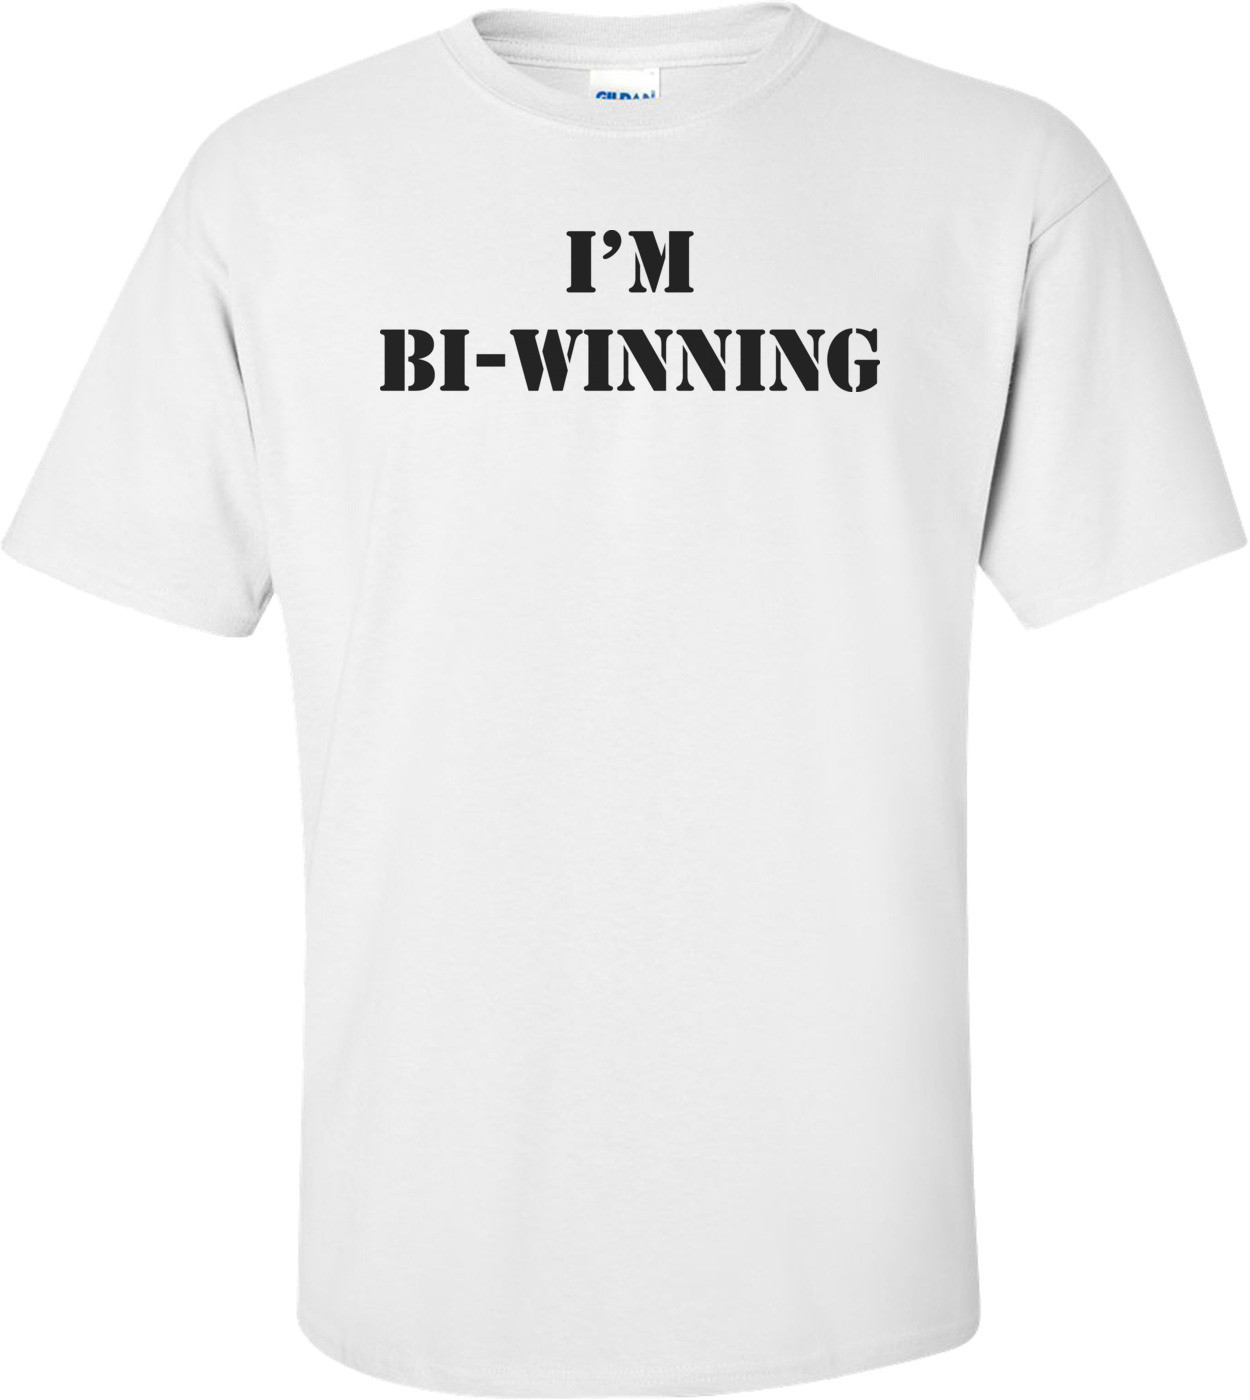 Charlie Sheen - I'm Bi-winning Shirt